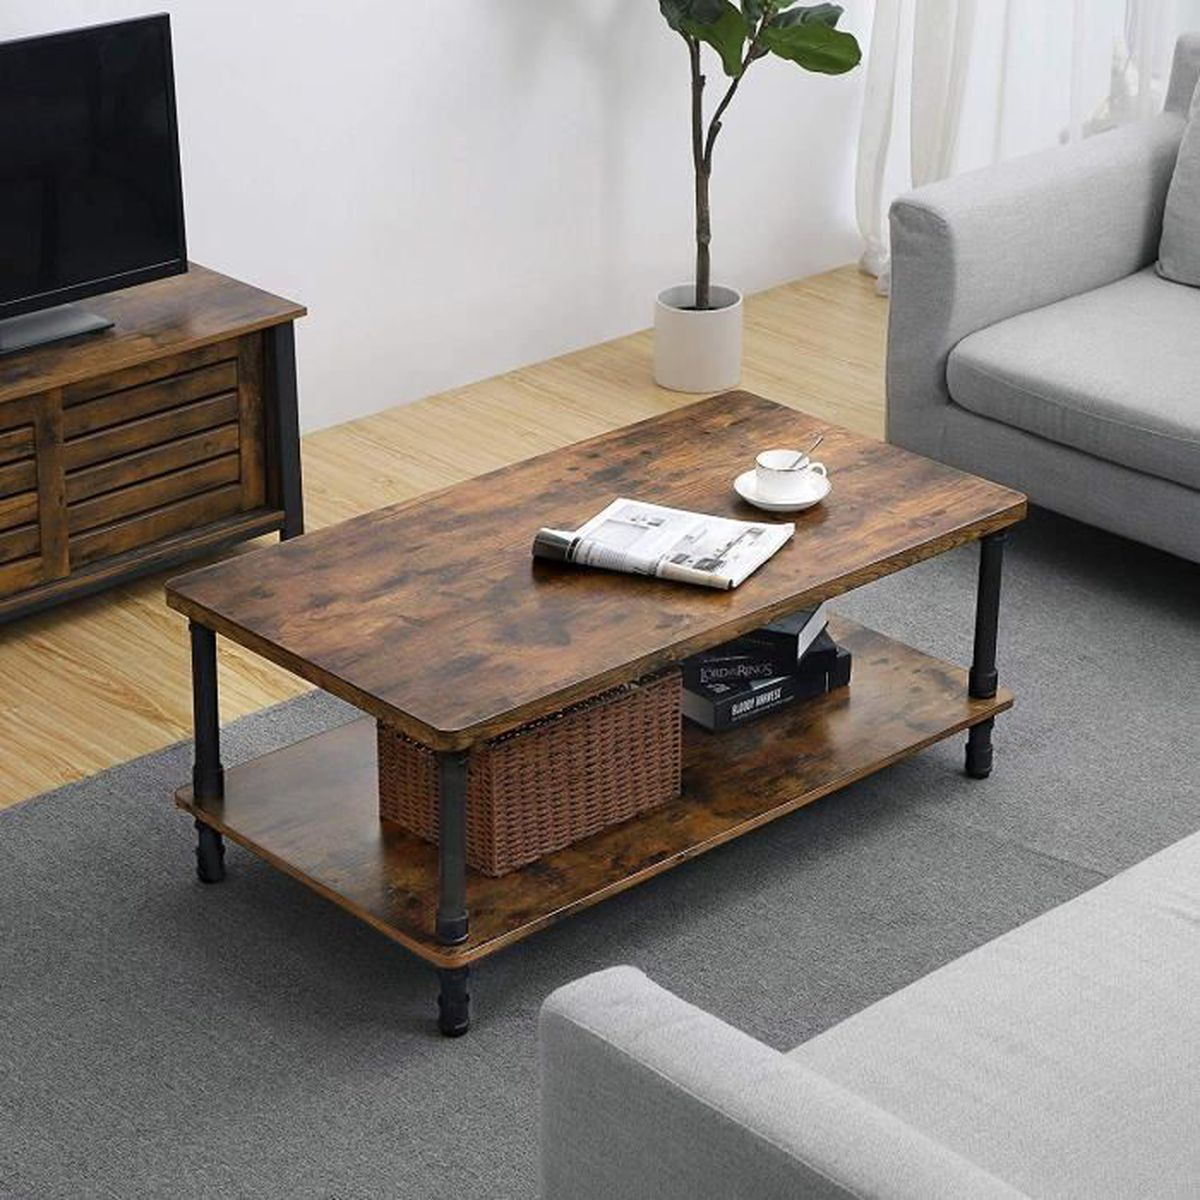 TABLE BASSE VASAGLE Table Basse Style Industriel Table d'appoi